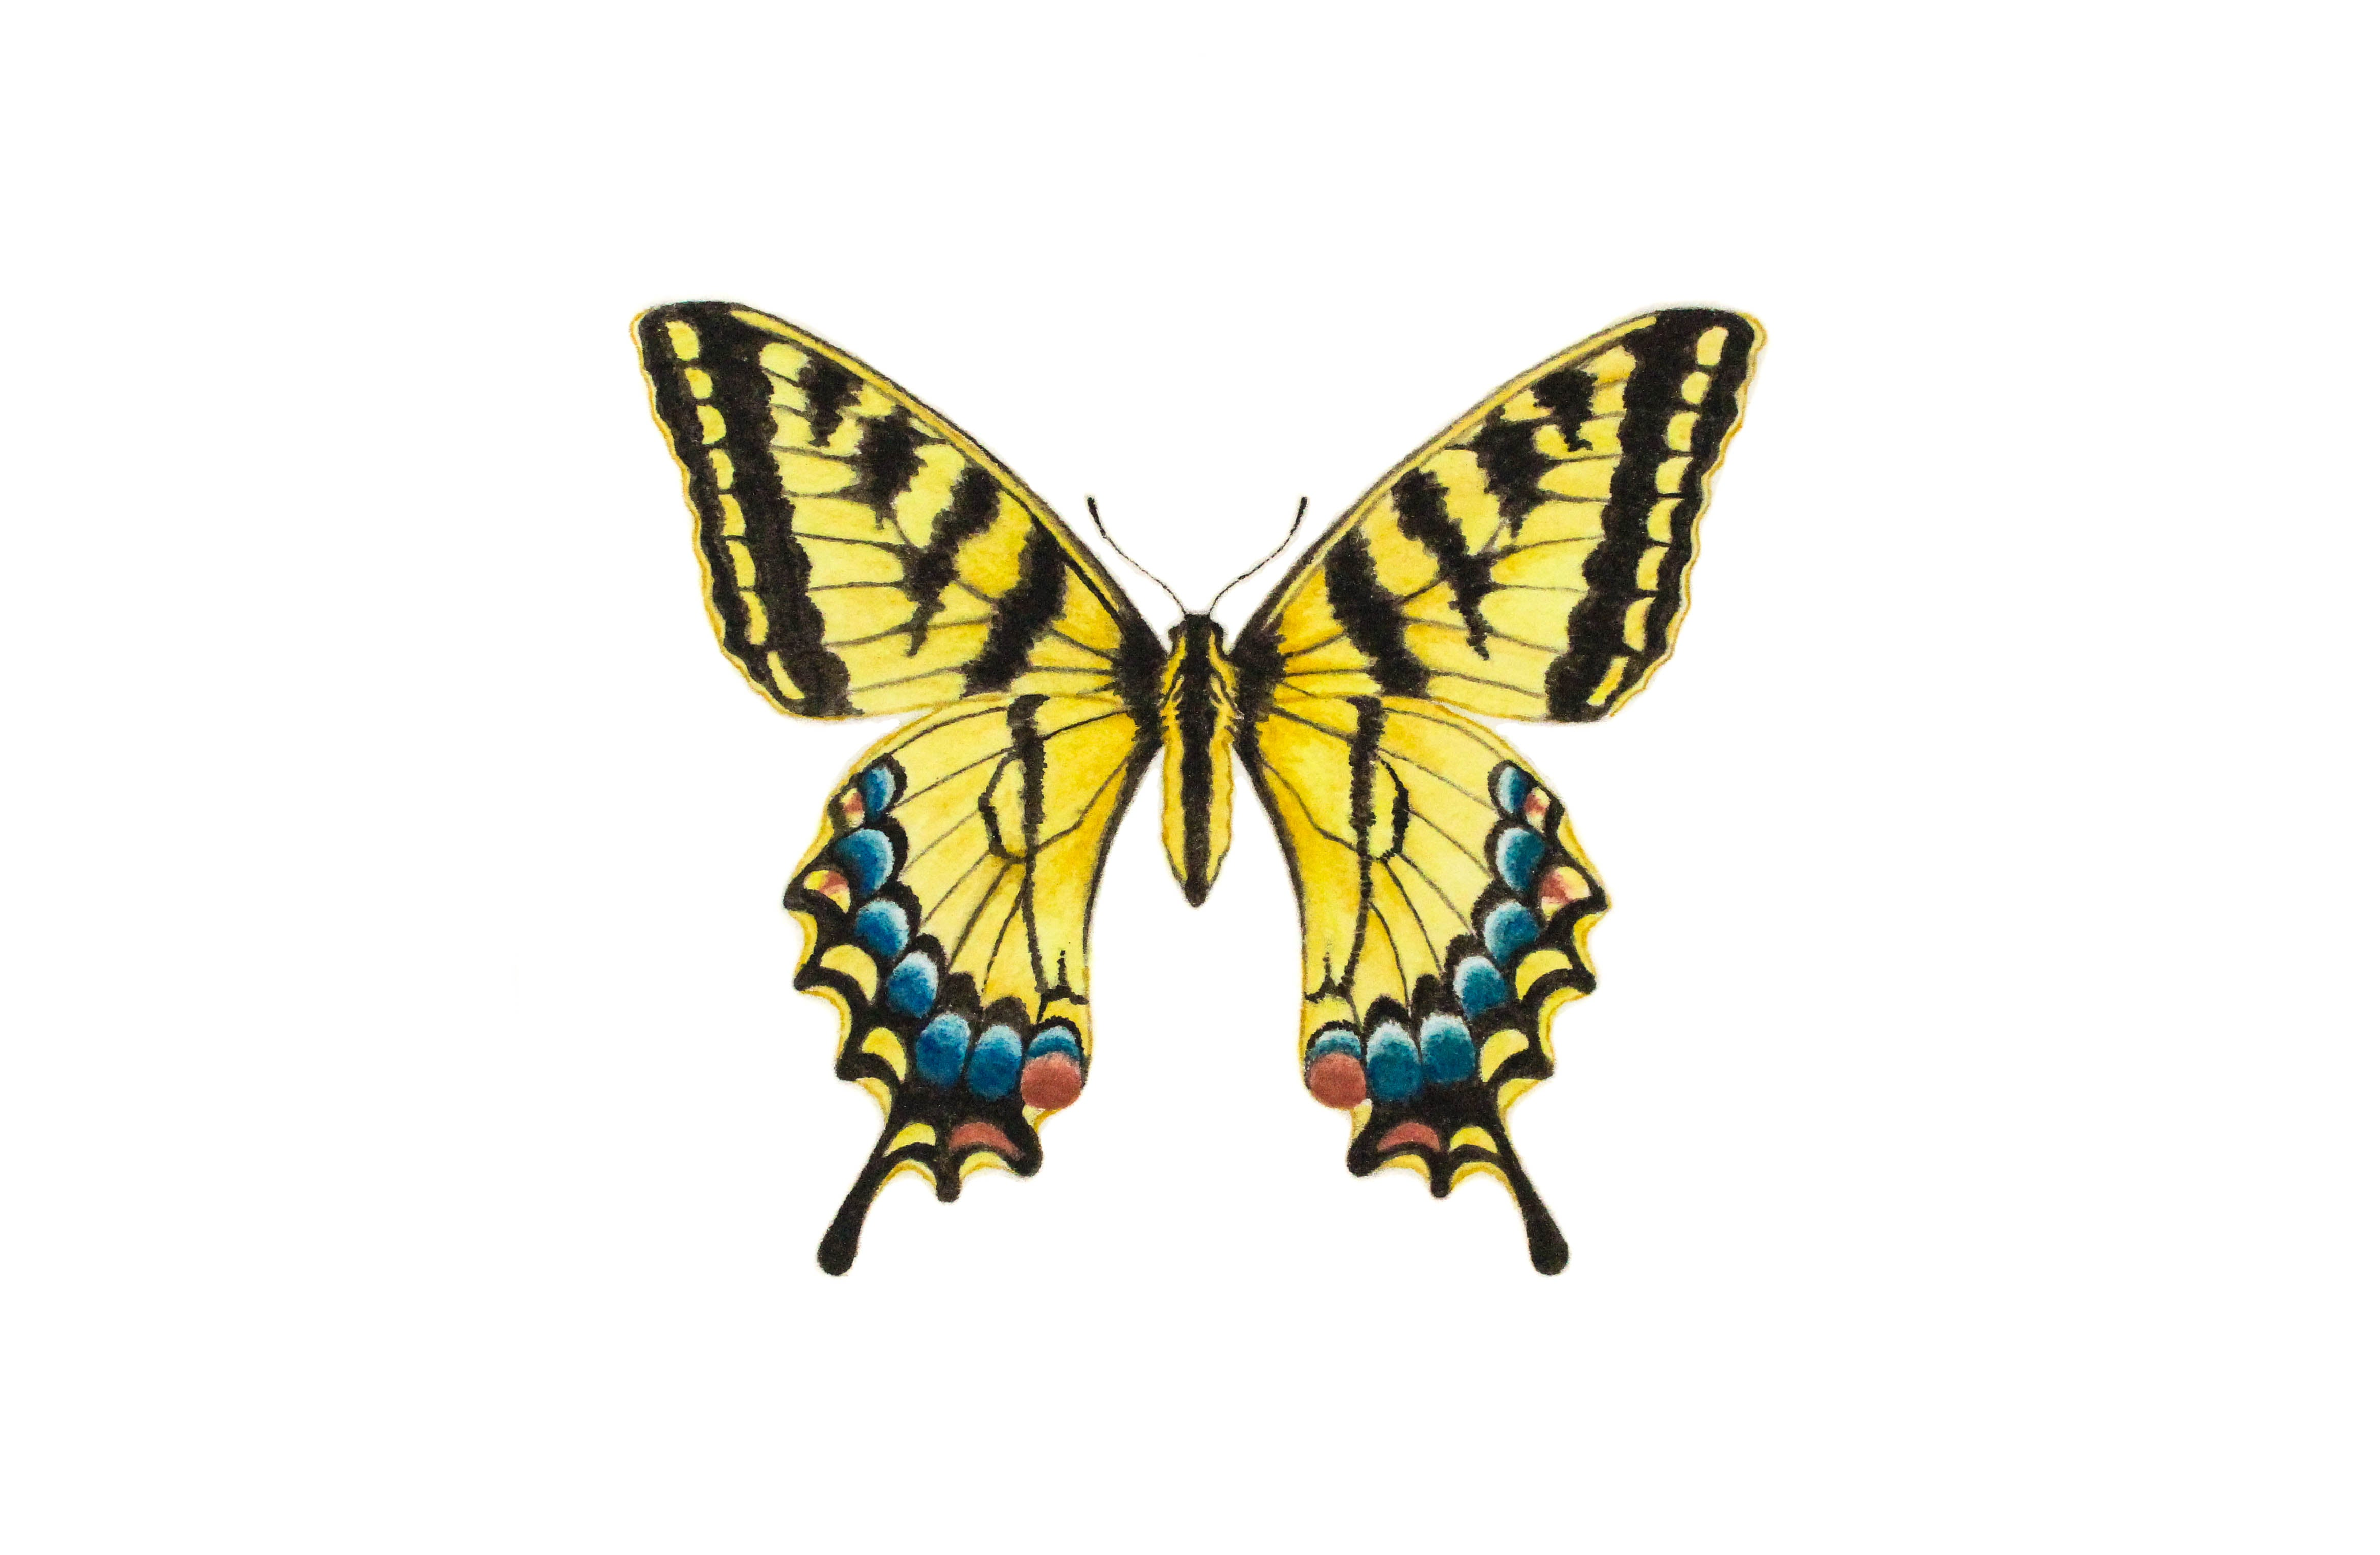 d1698ebdb Tiger Swallowtail Butterfly Paintable Project Digital Download – Greenleaf  & Blueberry